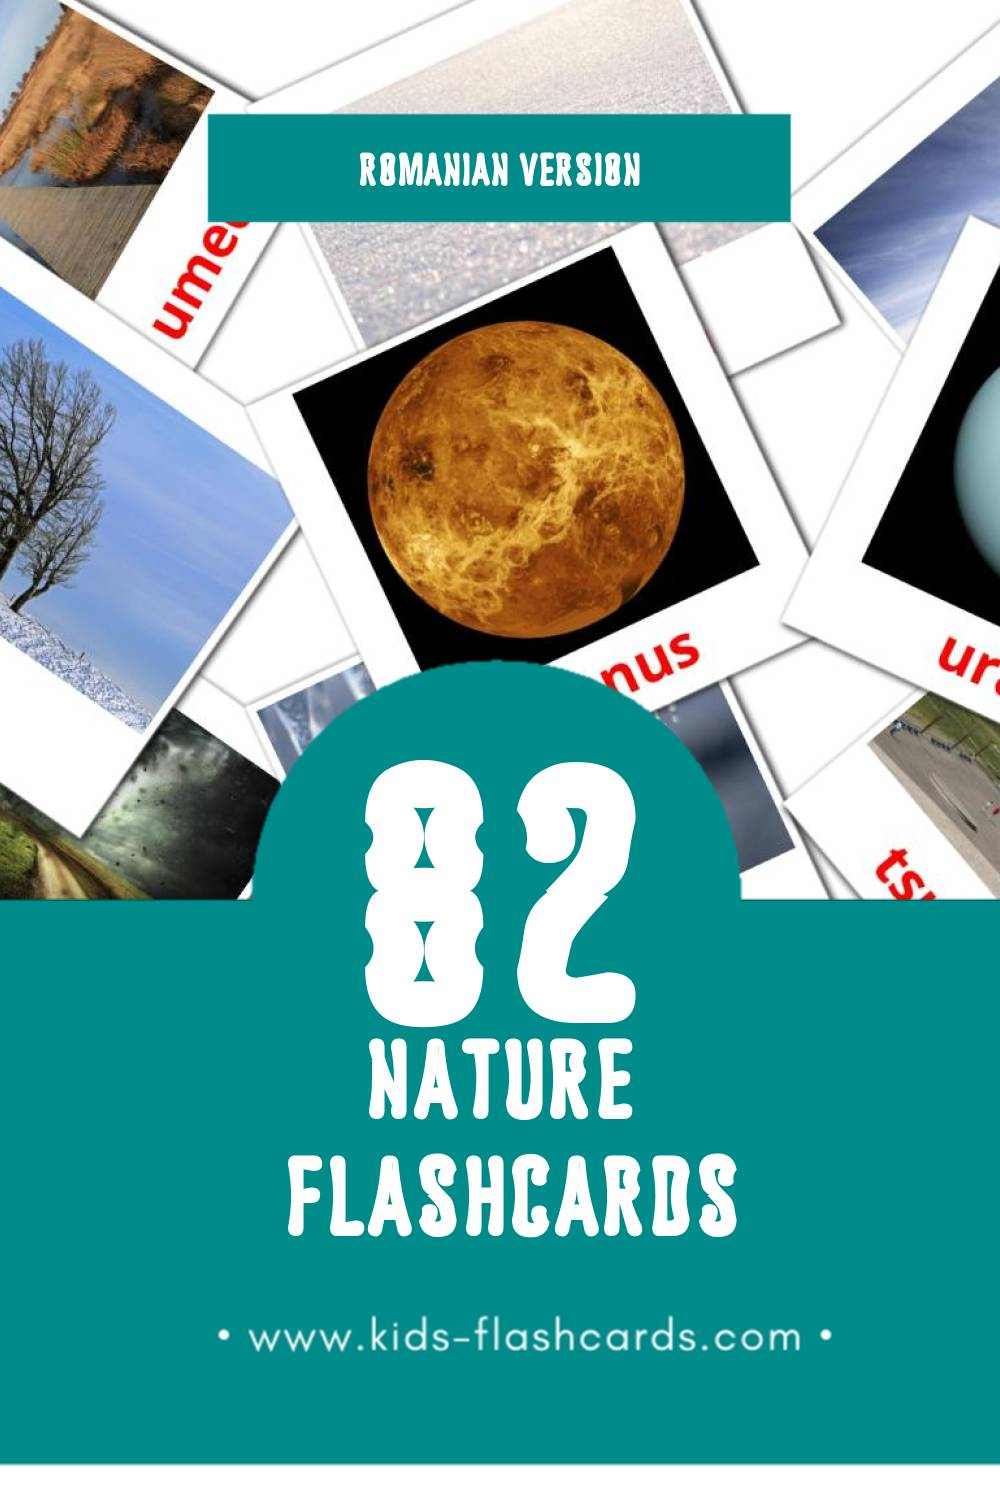 Visual Natura Flashcards for Toddlers (51 cards in Romanian)